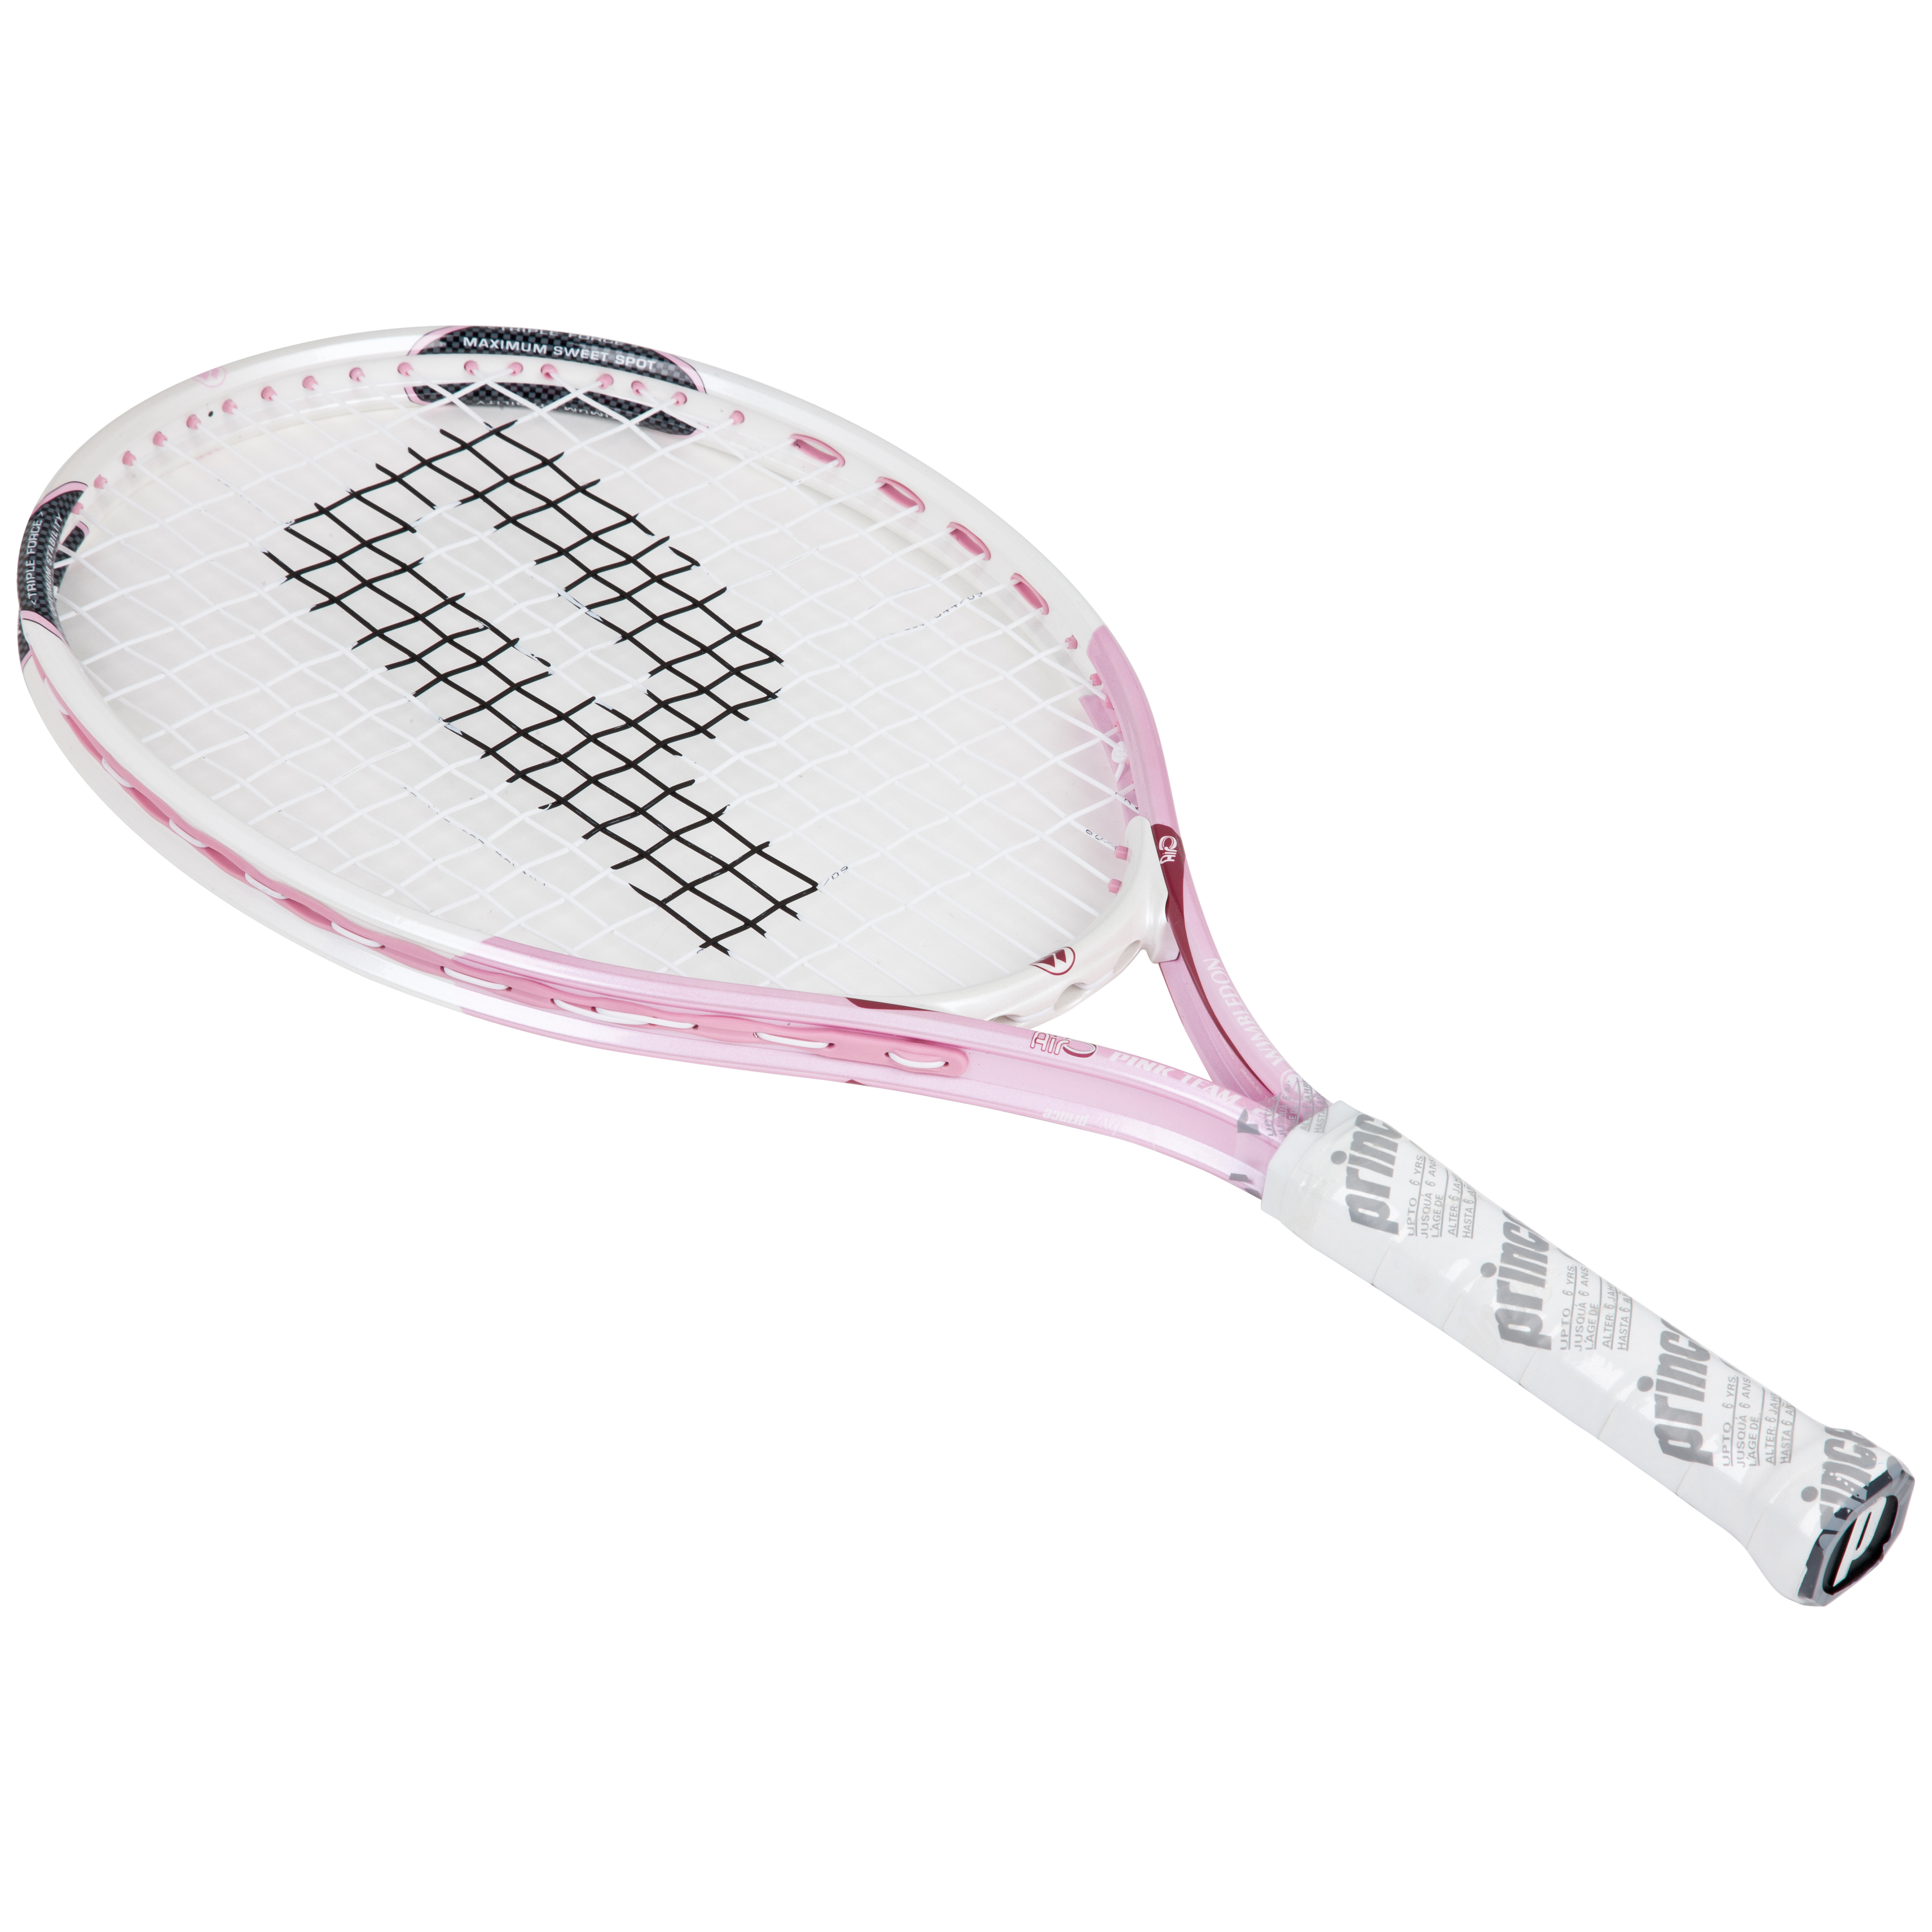 Wimbledon By Prince Airo Pink Team 21 Tennis Racket - White/Pink